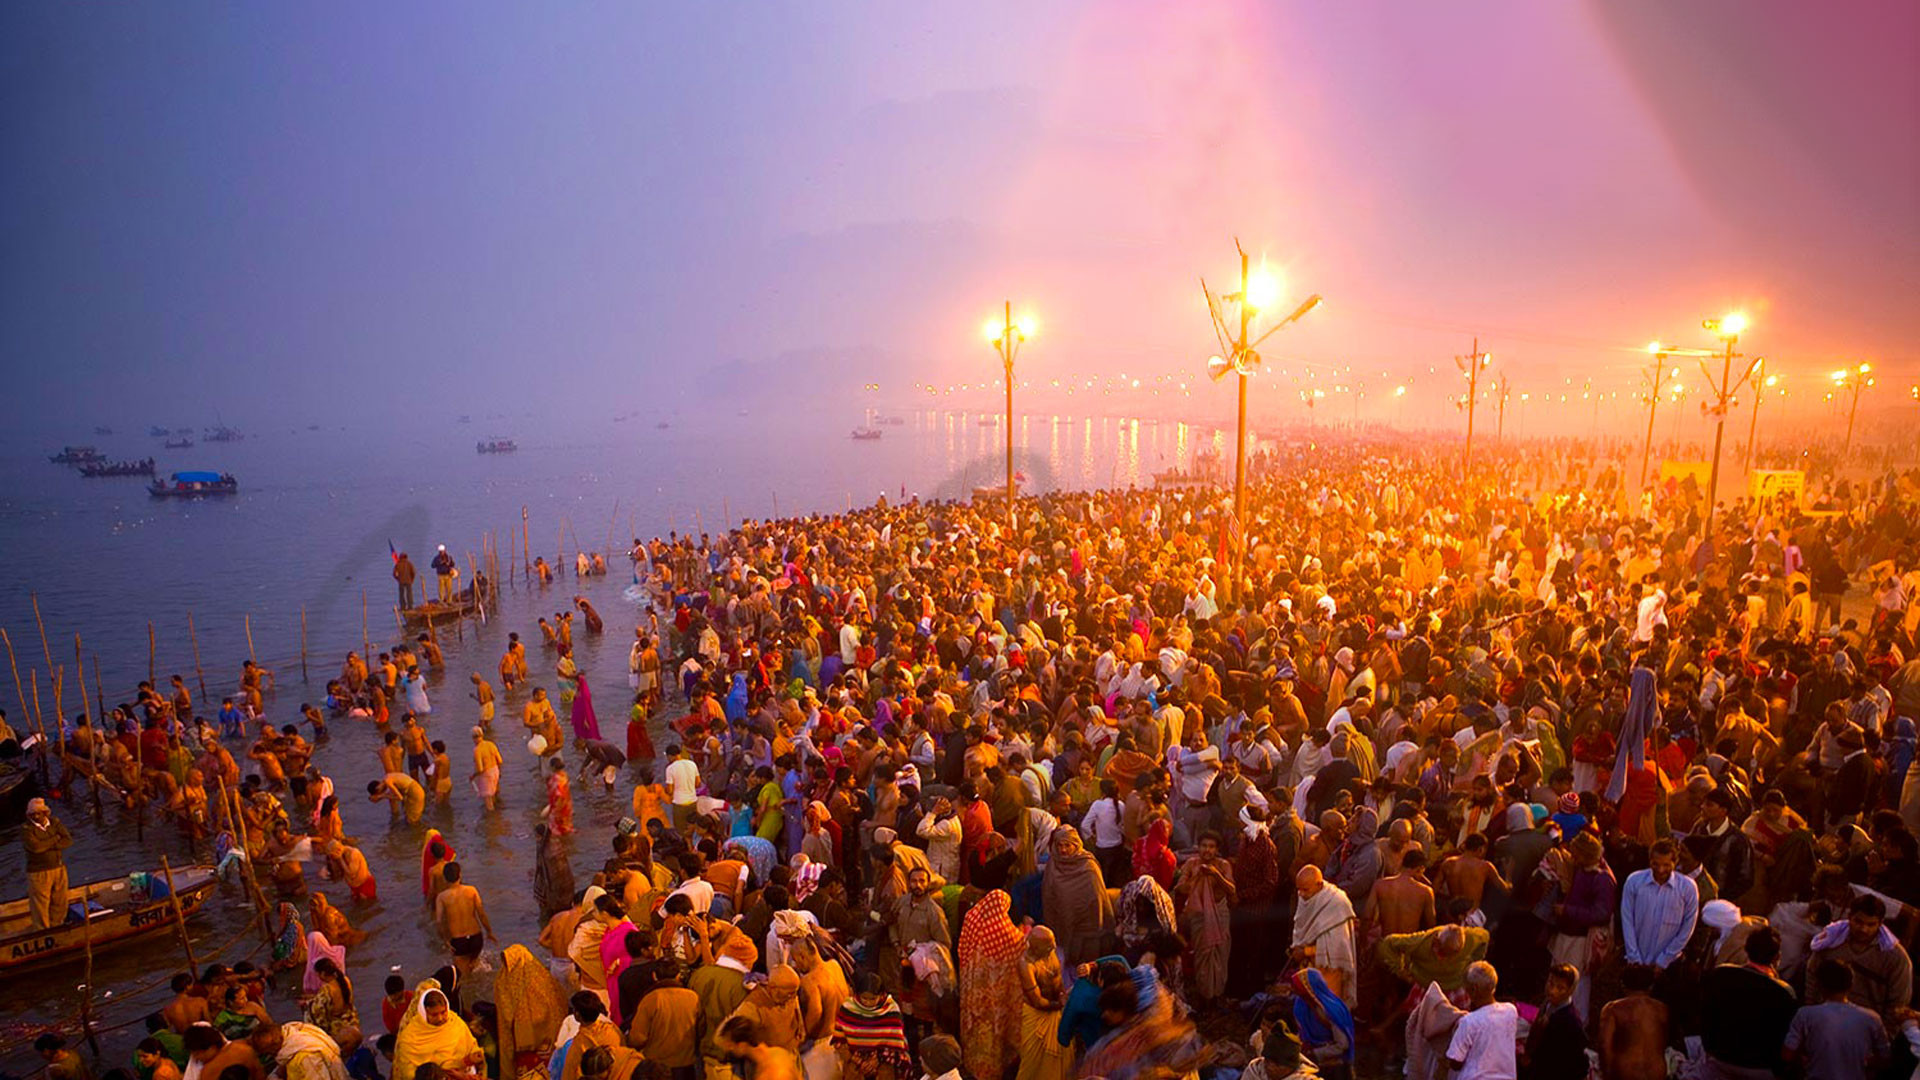 When Does Magh Mela Take Place?